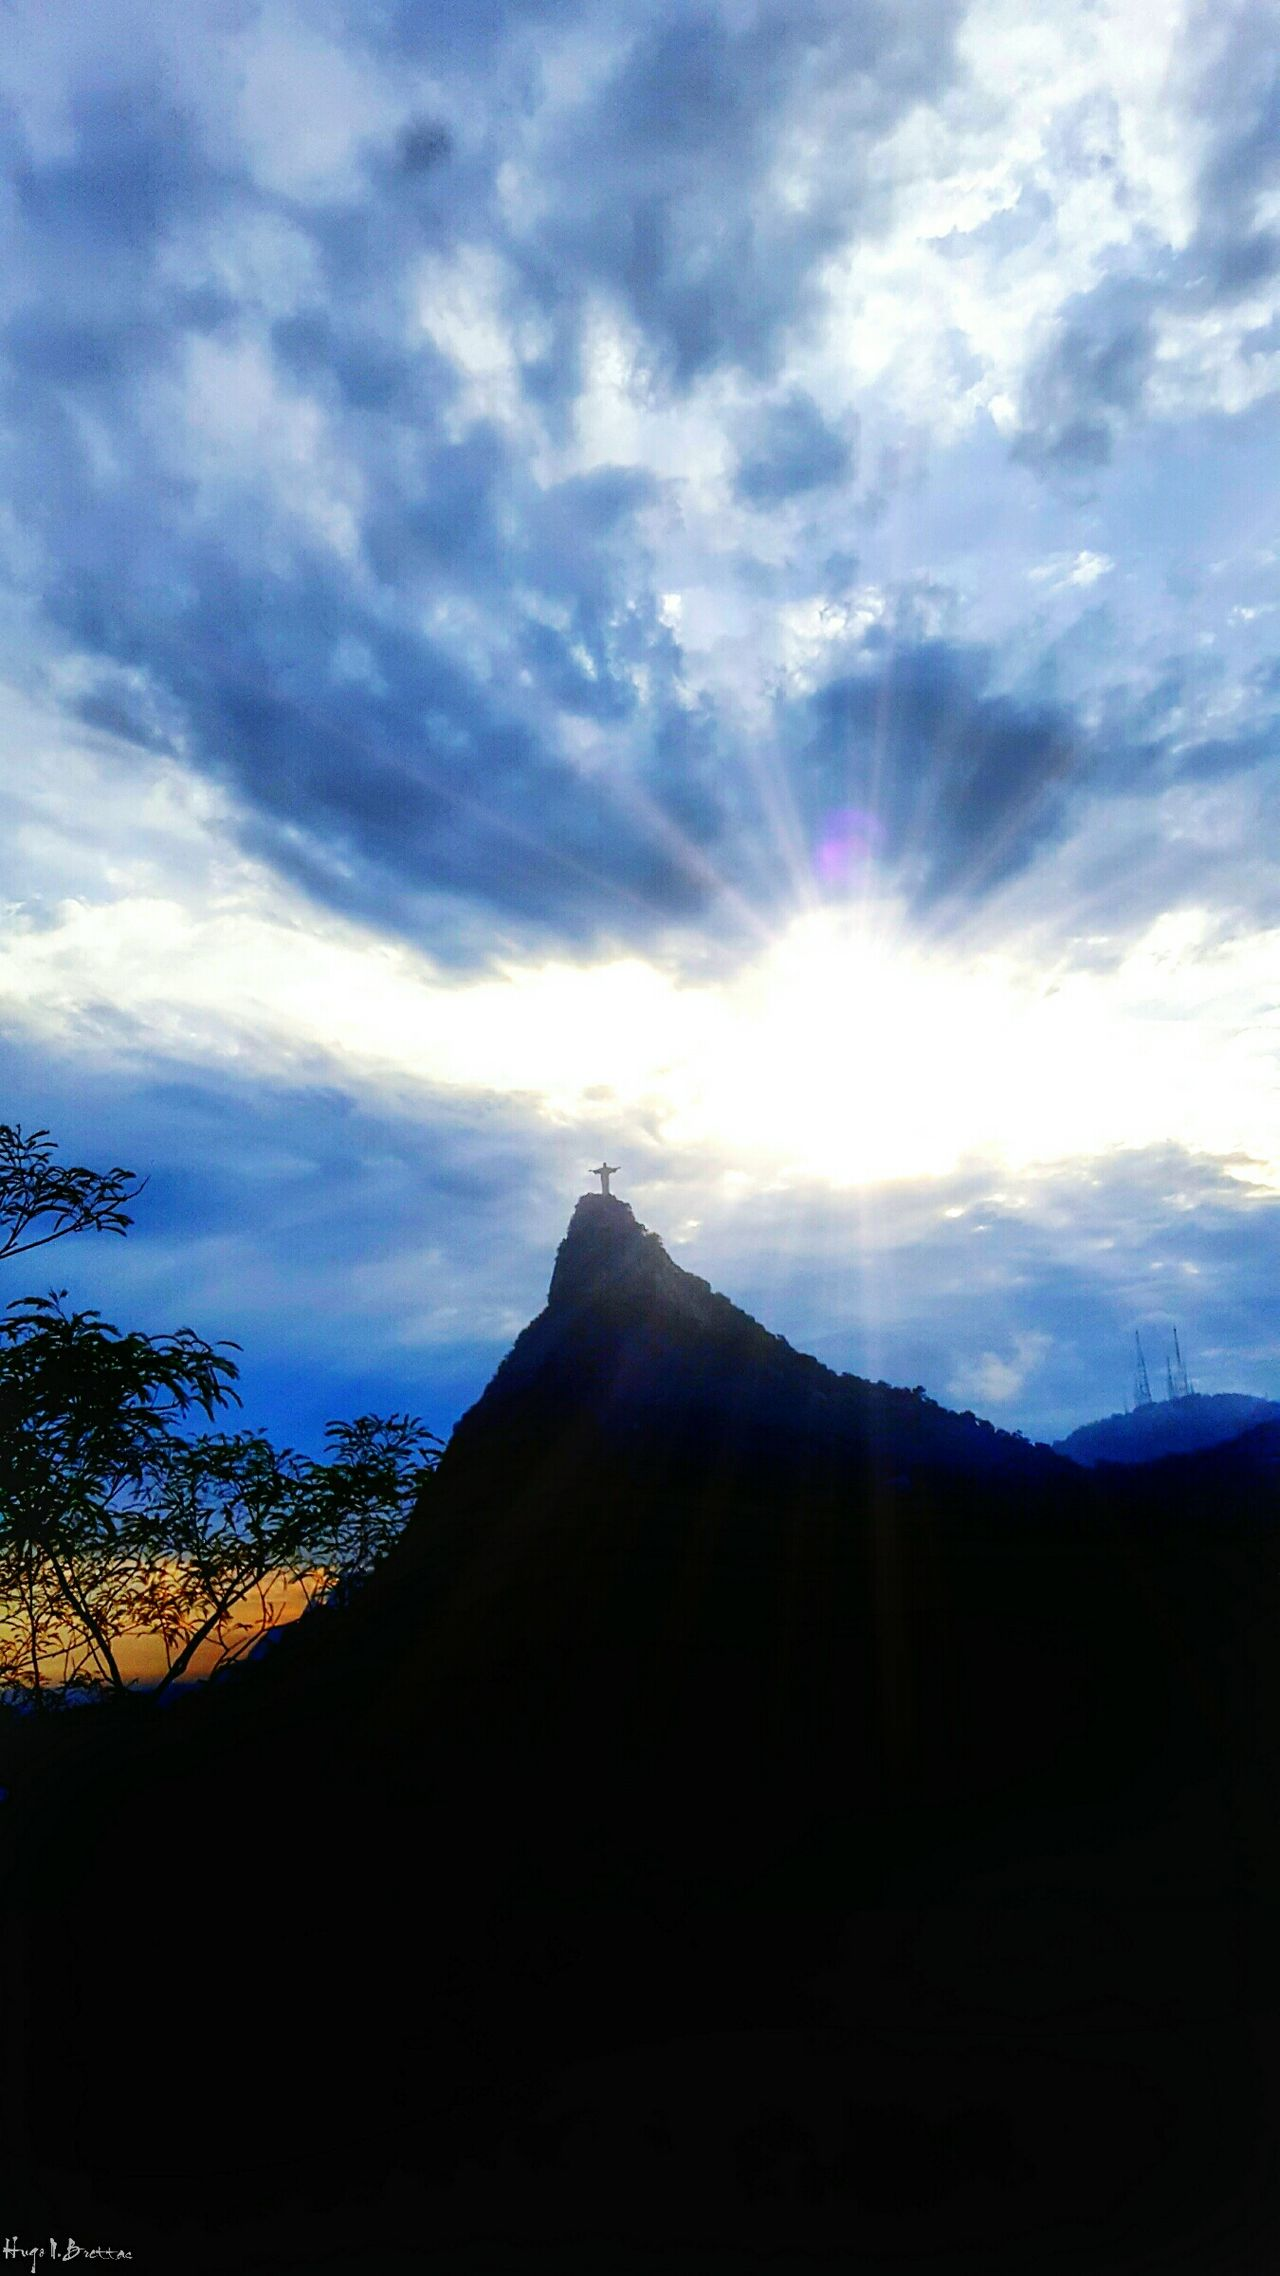 Landscape Cloud - Sky Scenics Beauty In Nature Nature No People Outdoors Sky Mountain Day Christ Redeemer Christ Redemptor Riodejaneiro Rio De Janeiro Brazil The Great Outdoors - 2017 EyeEm Awards